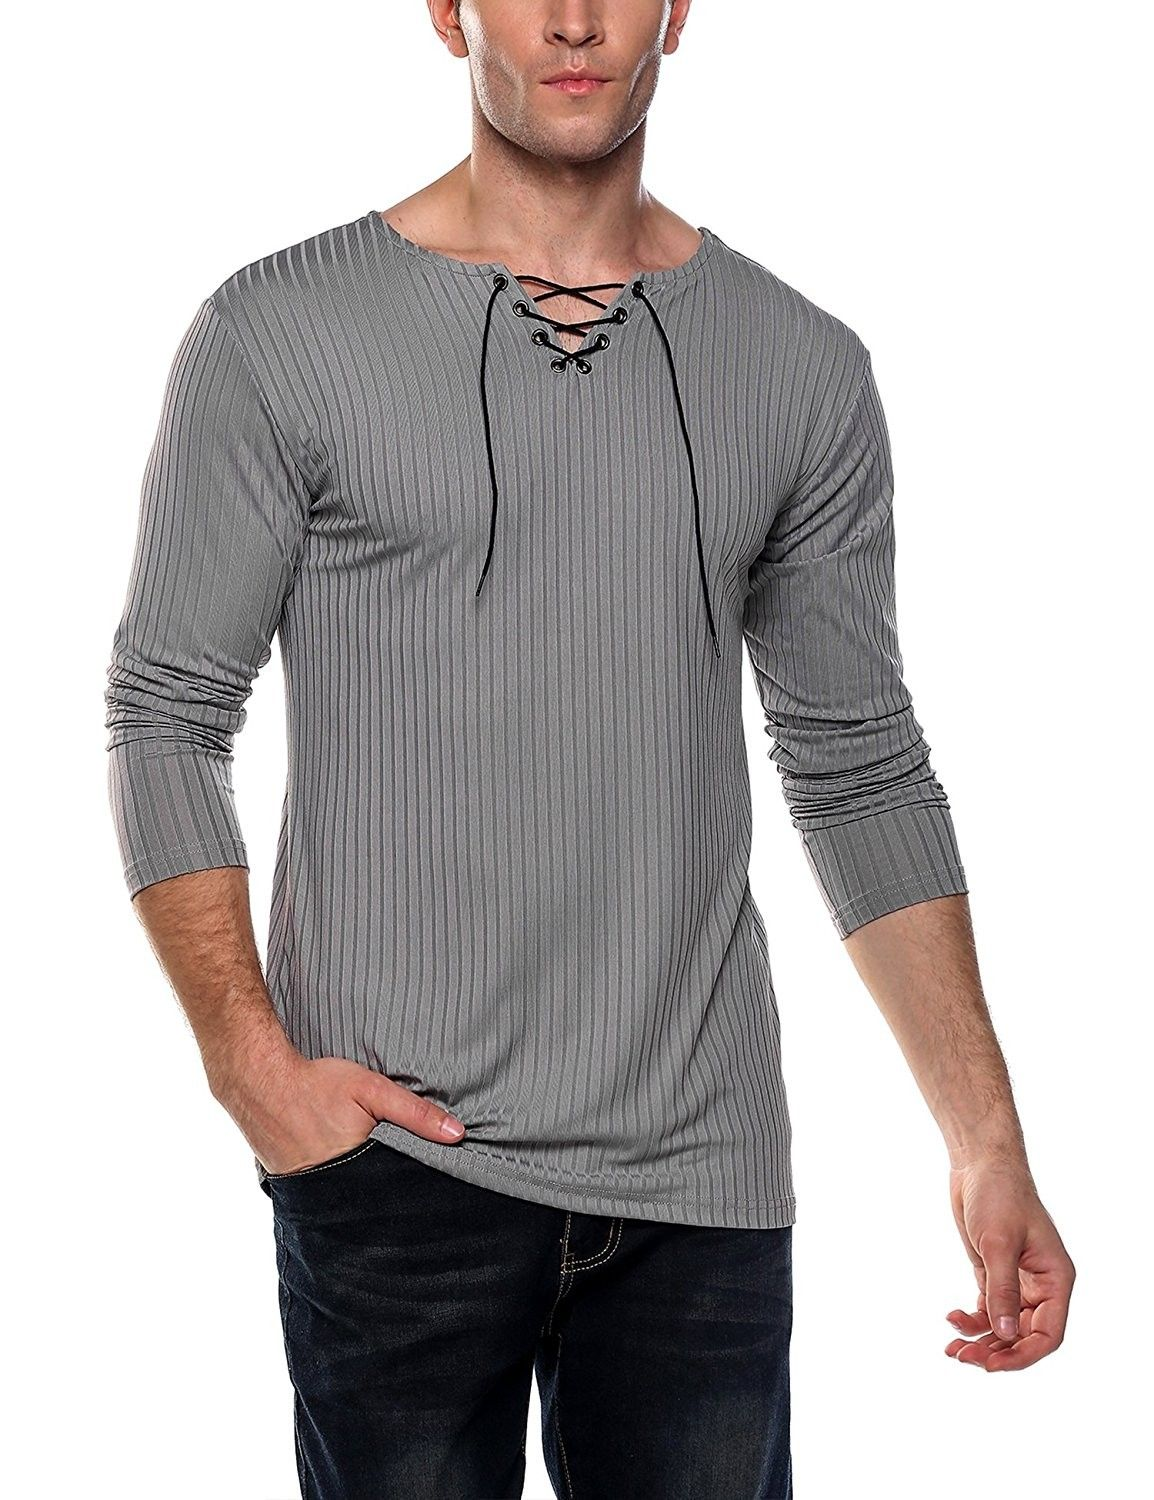 964d30ab840 Mens Long Sleeve Casual T-Shirt Lace Up V-Neck Solid Ribbed Shirt ...